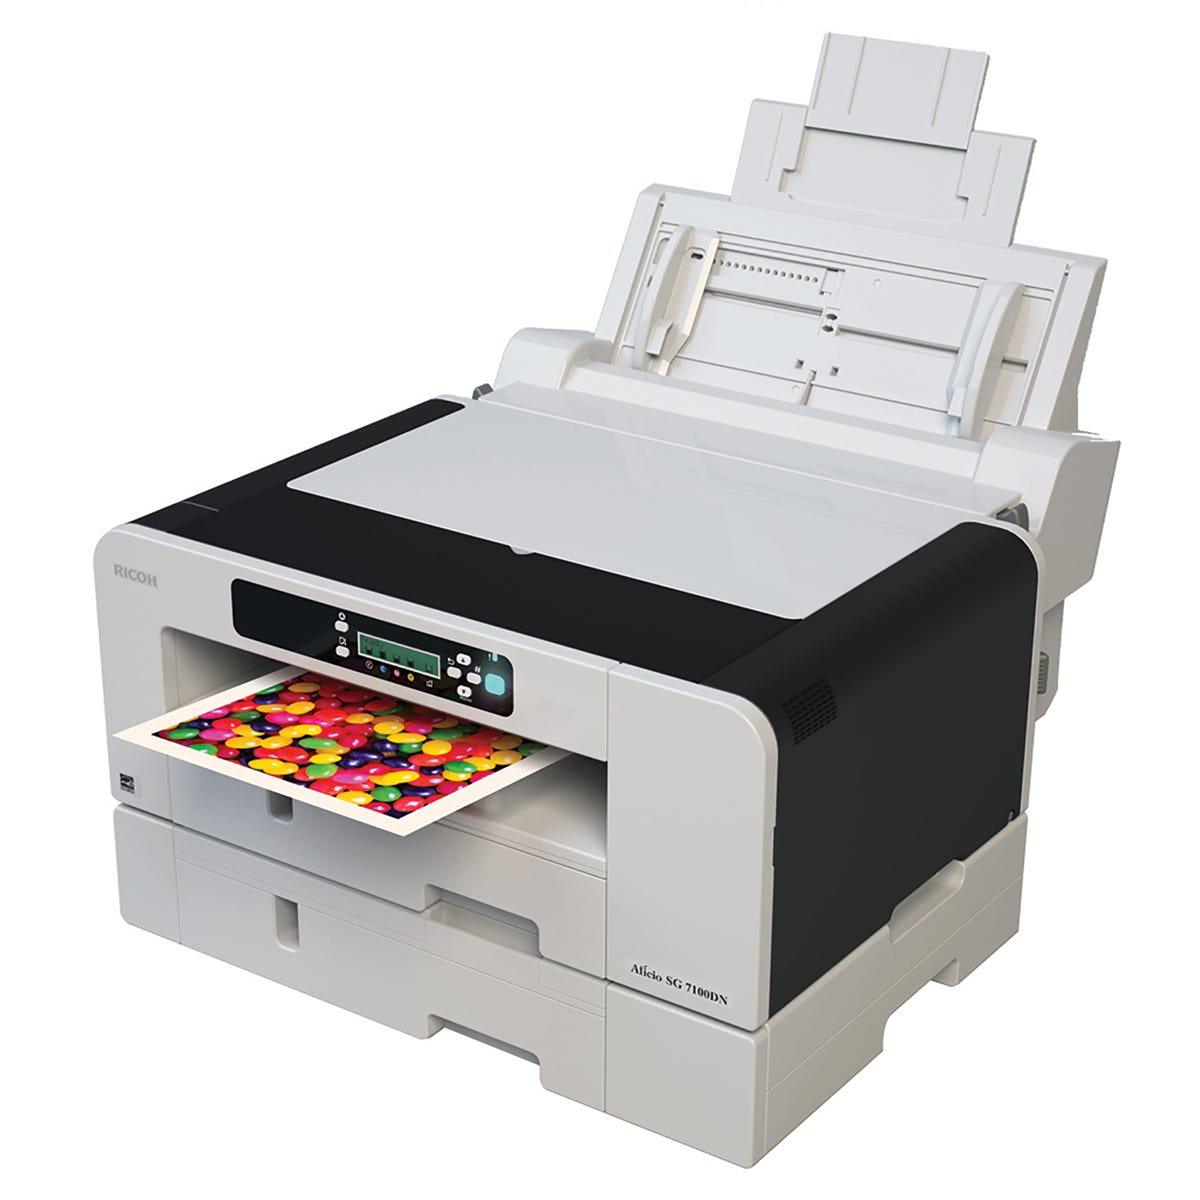 Ricoh SG 7100dn A3 Desktop Geljet Printer